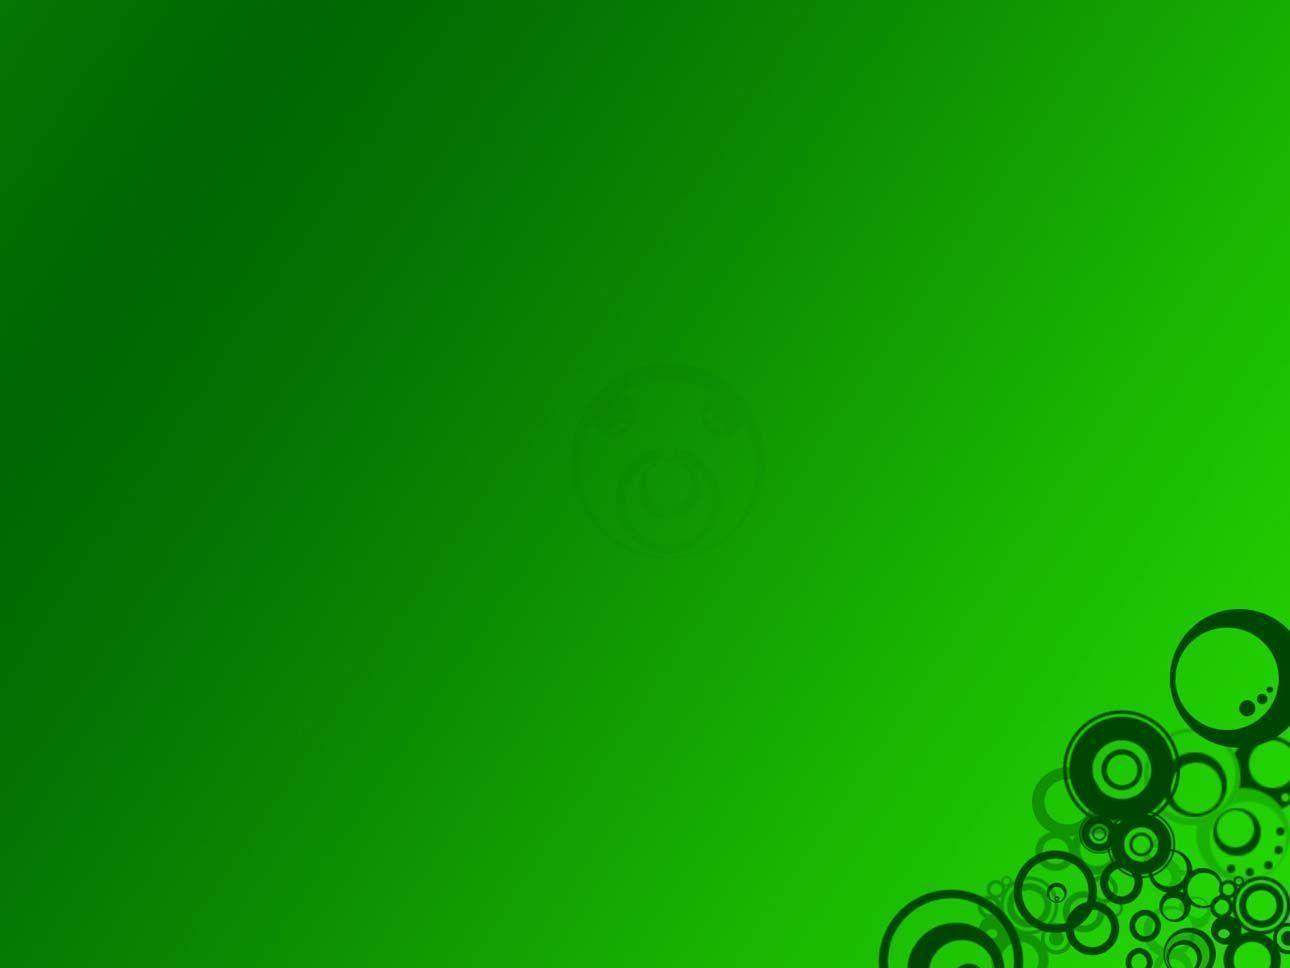 Green Color Wallpaper Free Download Wallpaper Desktop Backgrounds